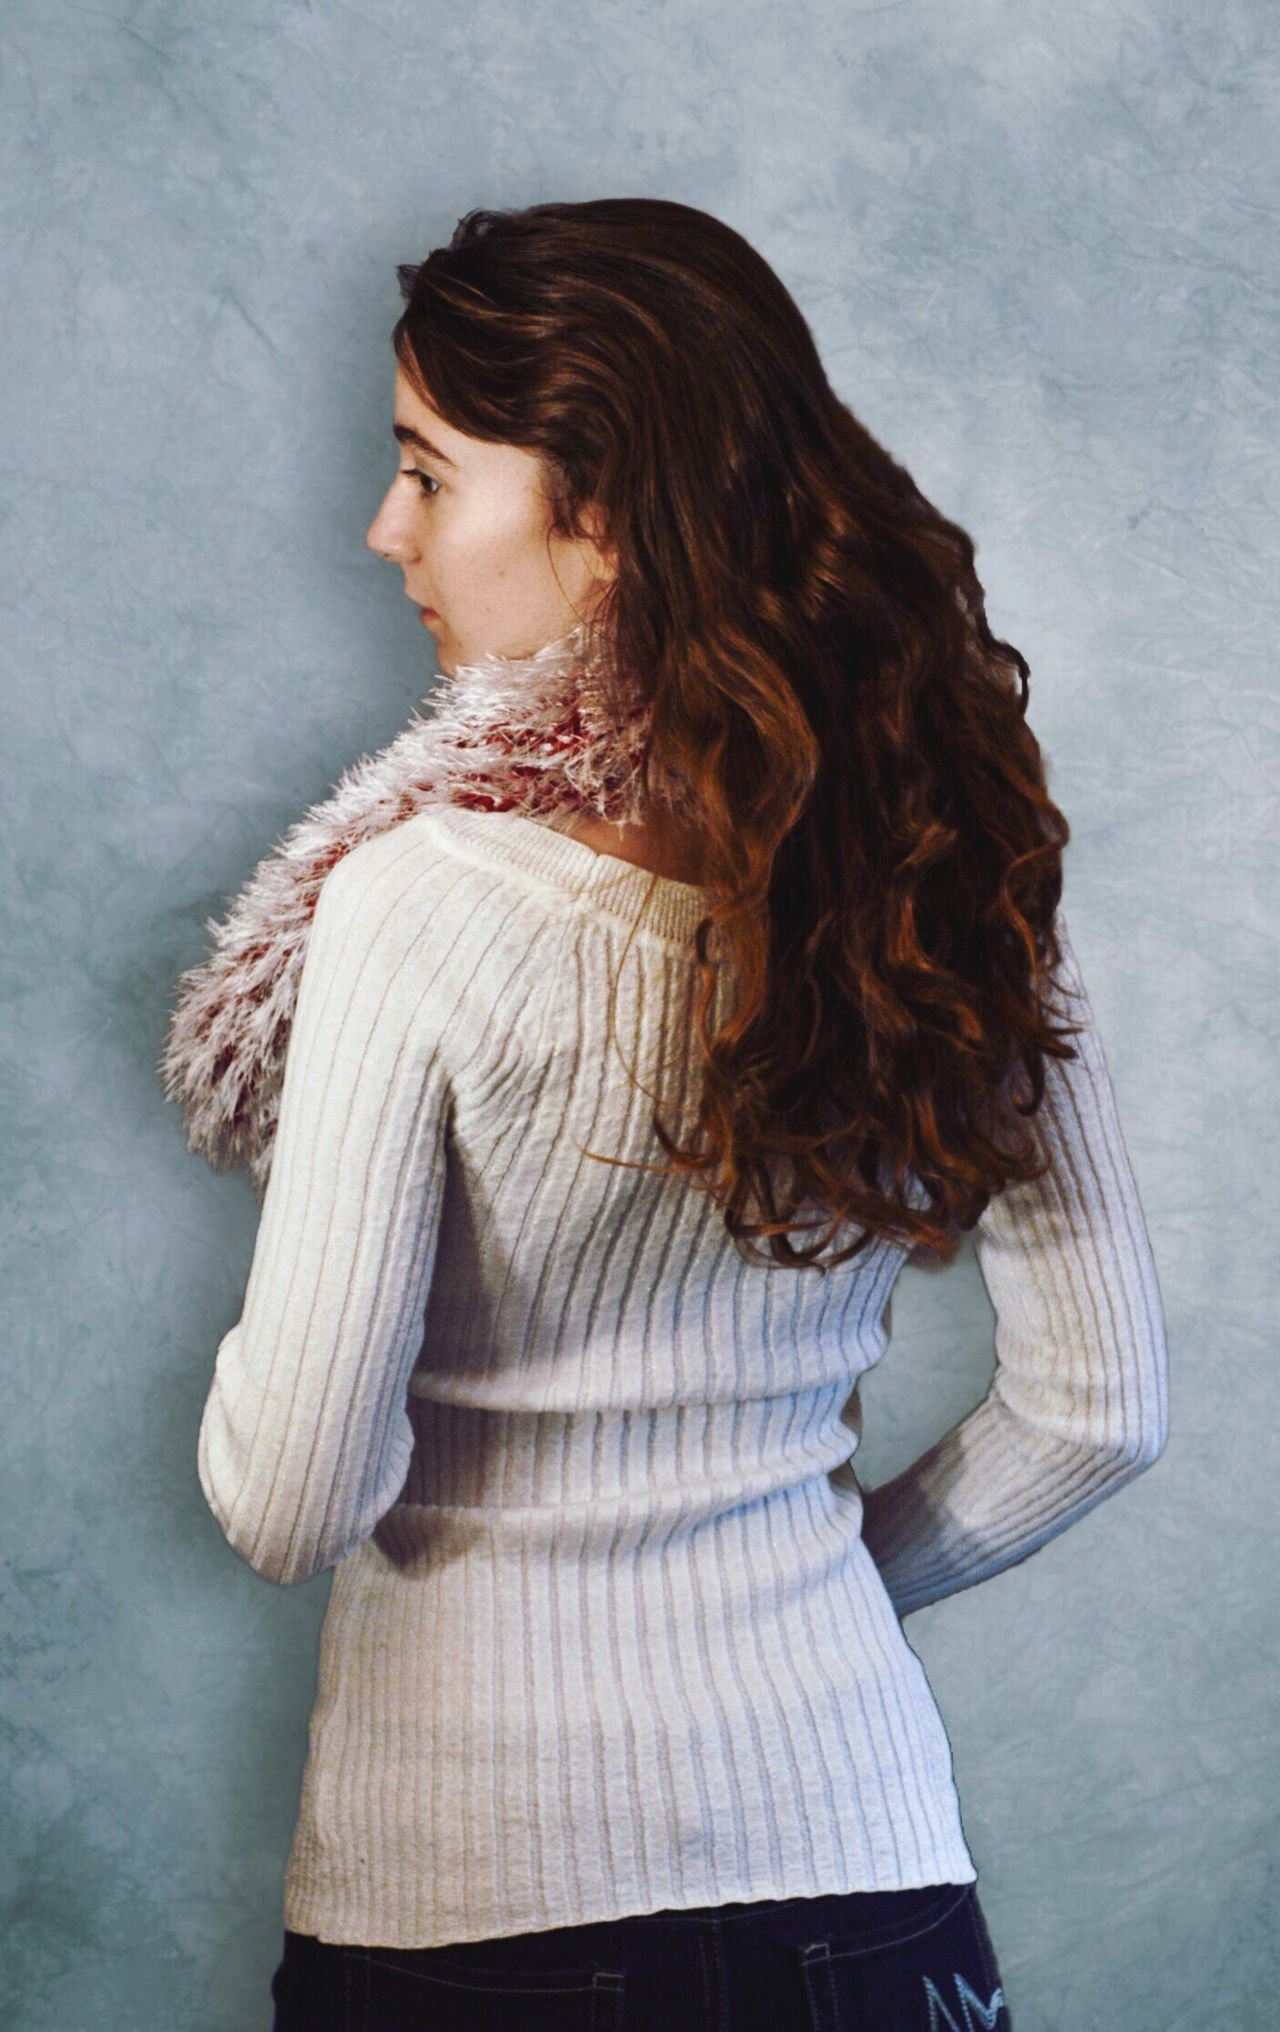 Woman with long wavy hair One Person Standing Three Quarter Length Long Hair Looking Away Casual Clothing Lifestyles Real People Young Adult Beautiful Woman Young Women Beauty Indoors  Only Women People Adults Only Adult Model Fashion Winter Fashion White Color Brunette Long Hair Curly Hair Wavy Hair